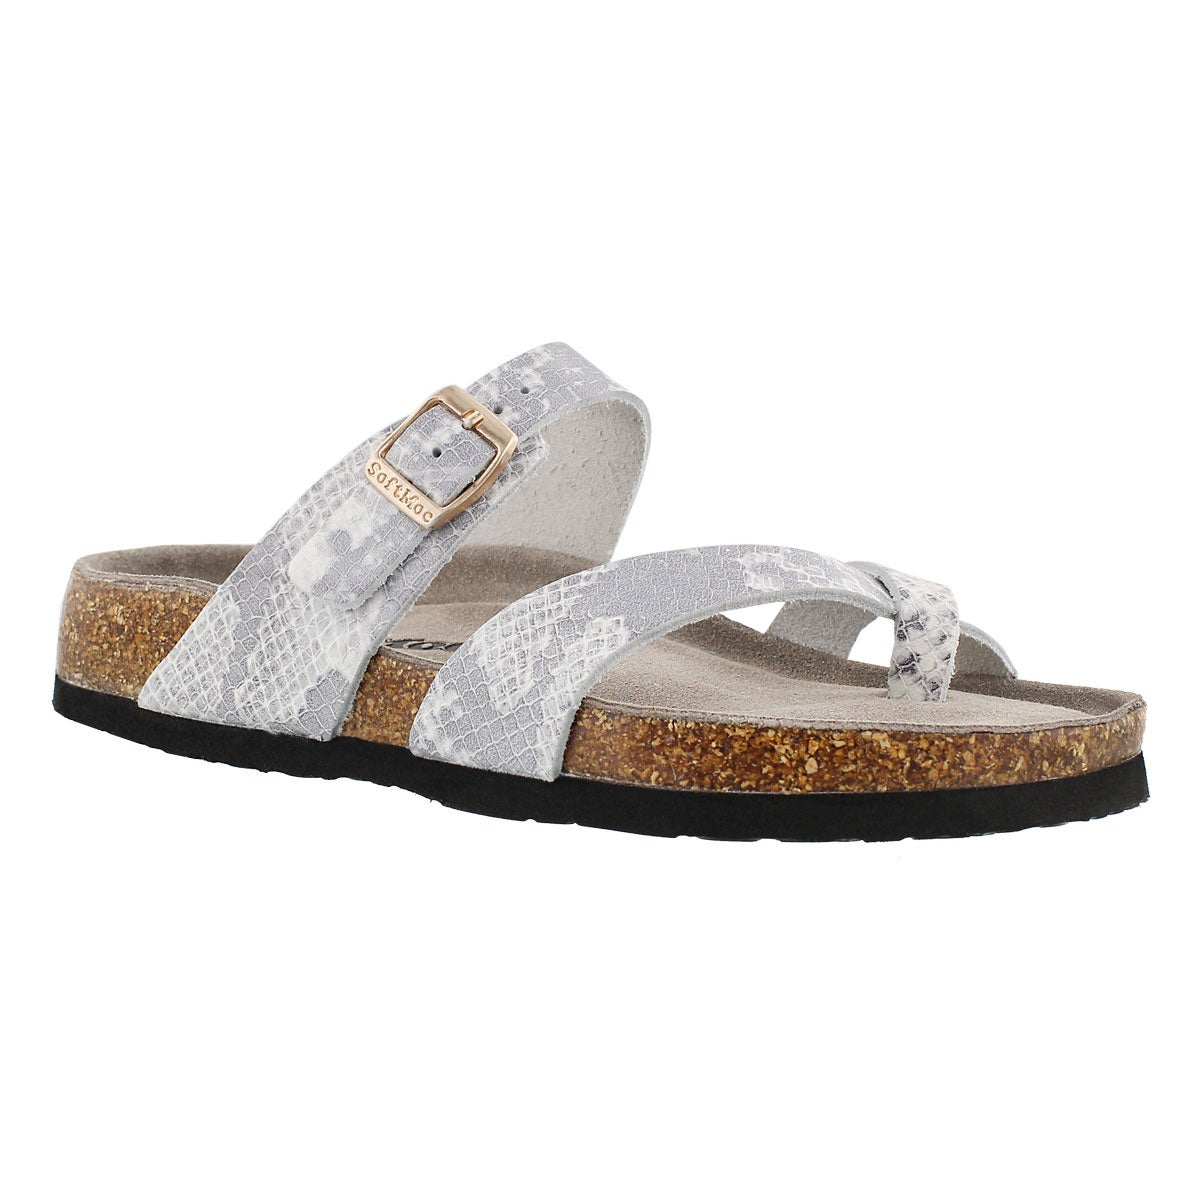 Women's ALICIA 3 wht-snk memory foam sandals